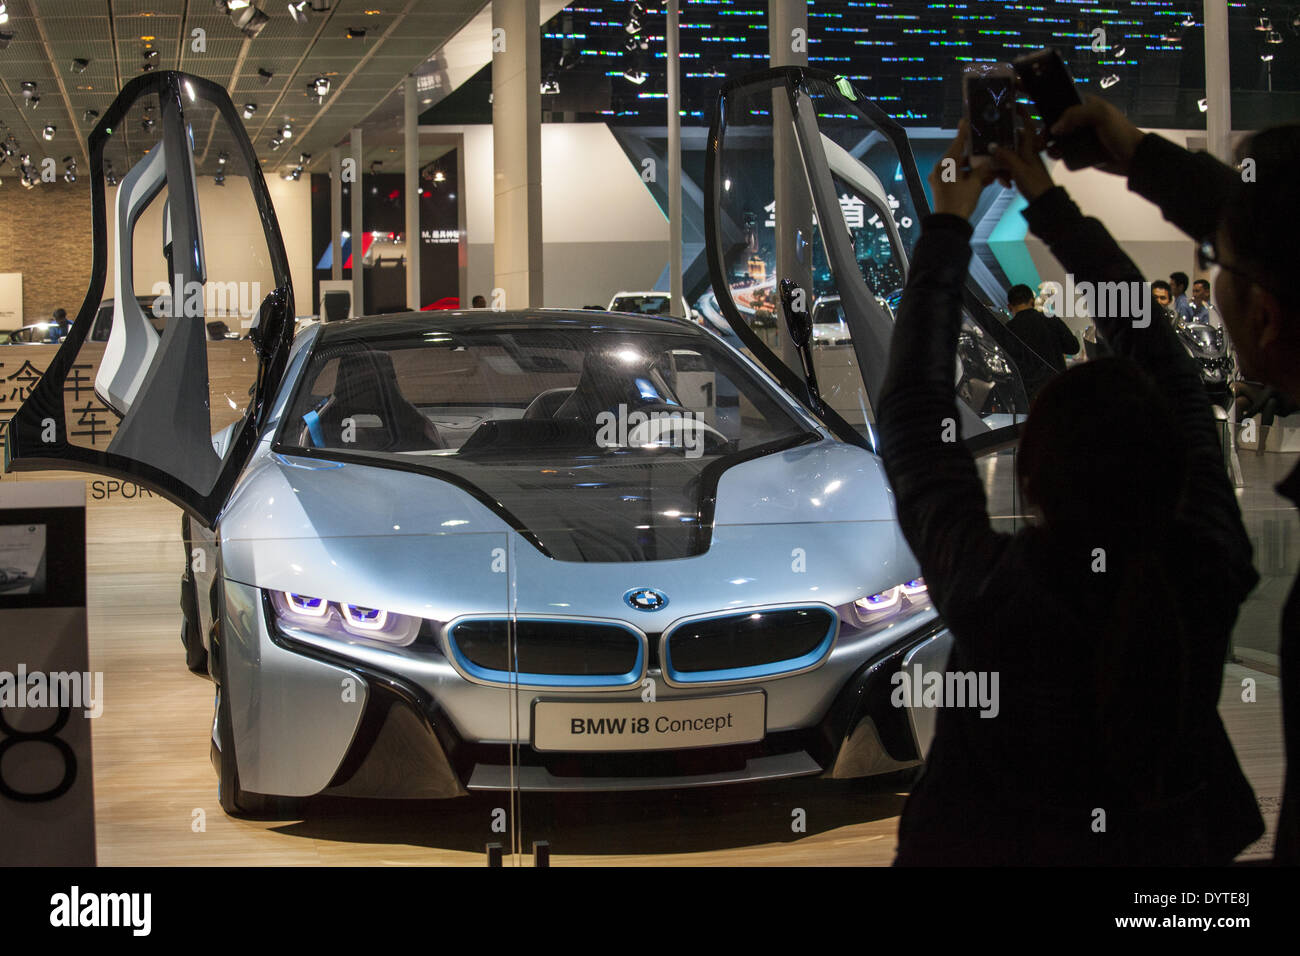 Visitors take pictures of a BMW's iconcept at Auto Shanghai 2013 - Stock Image